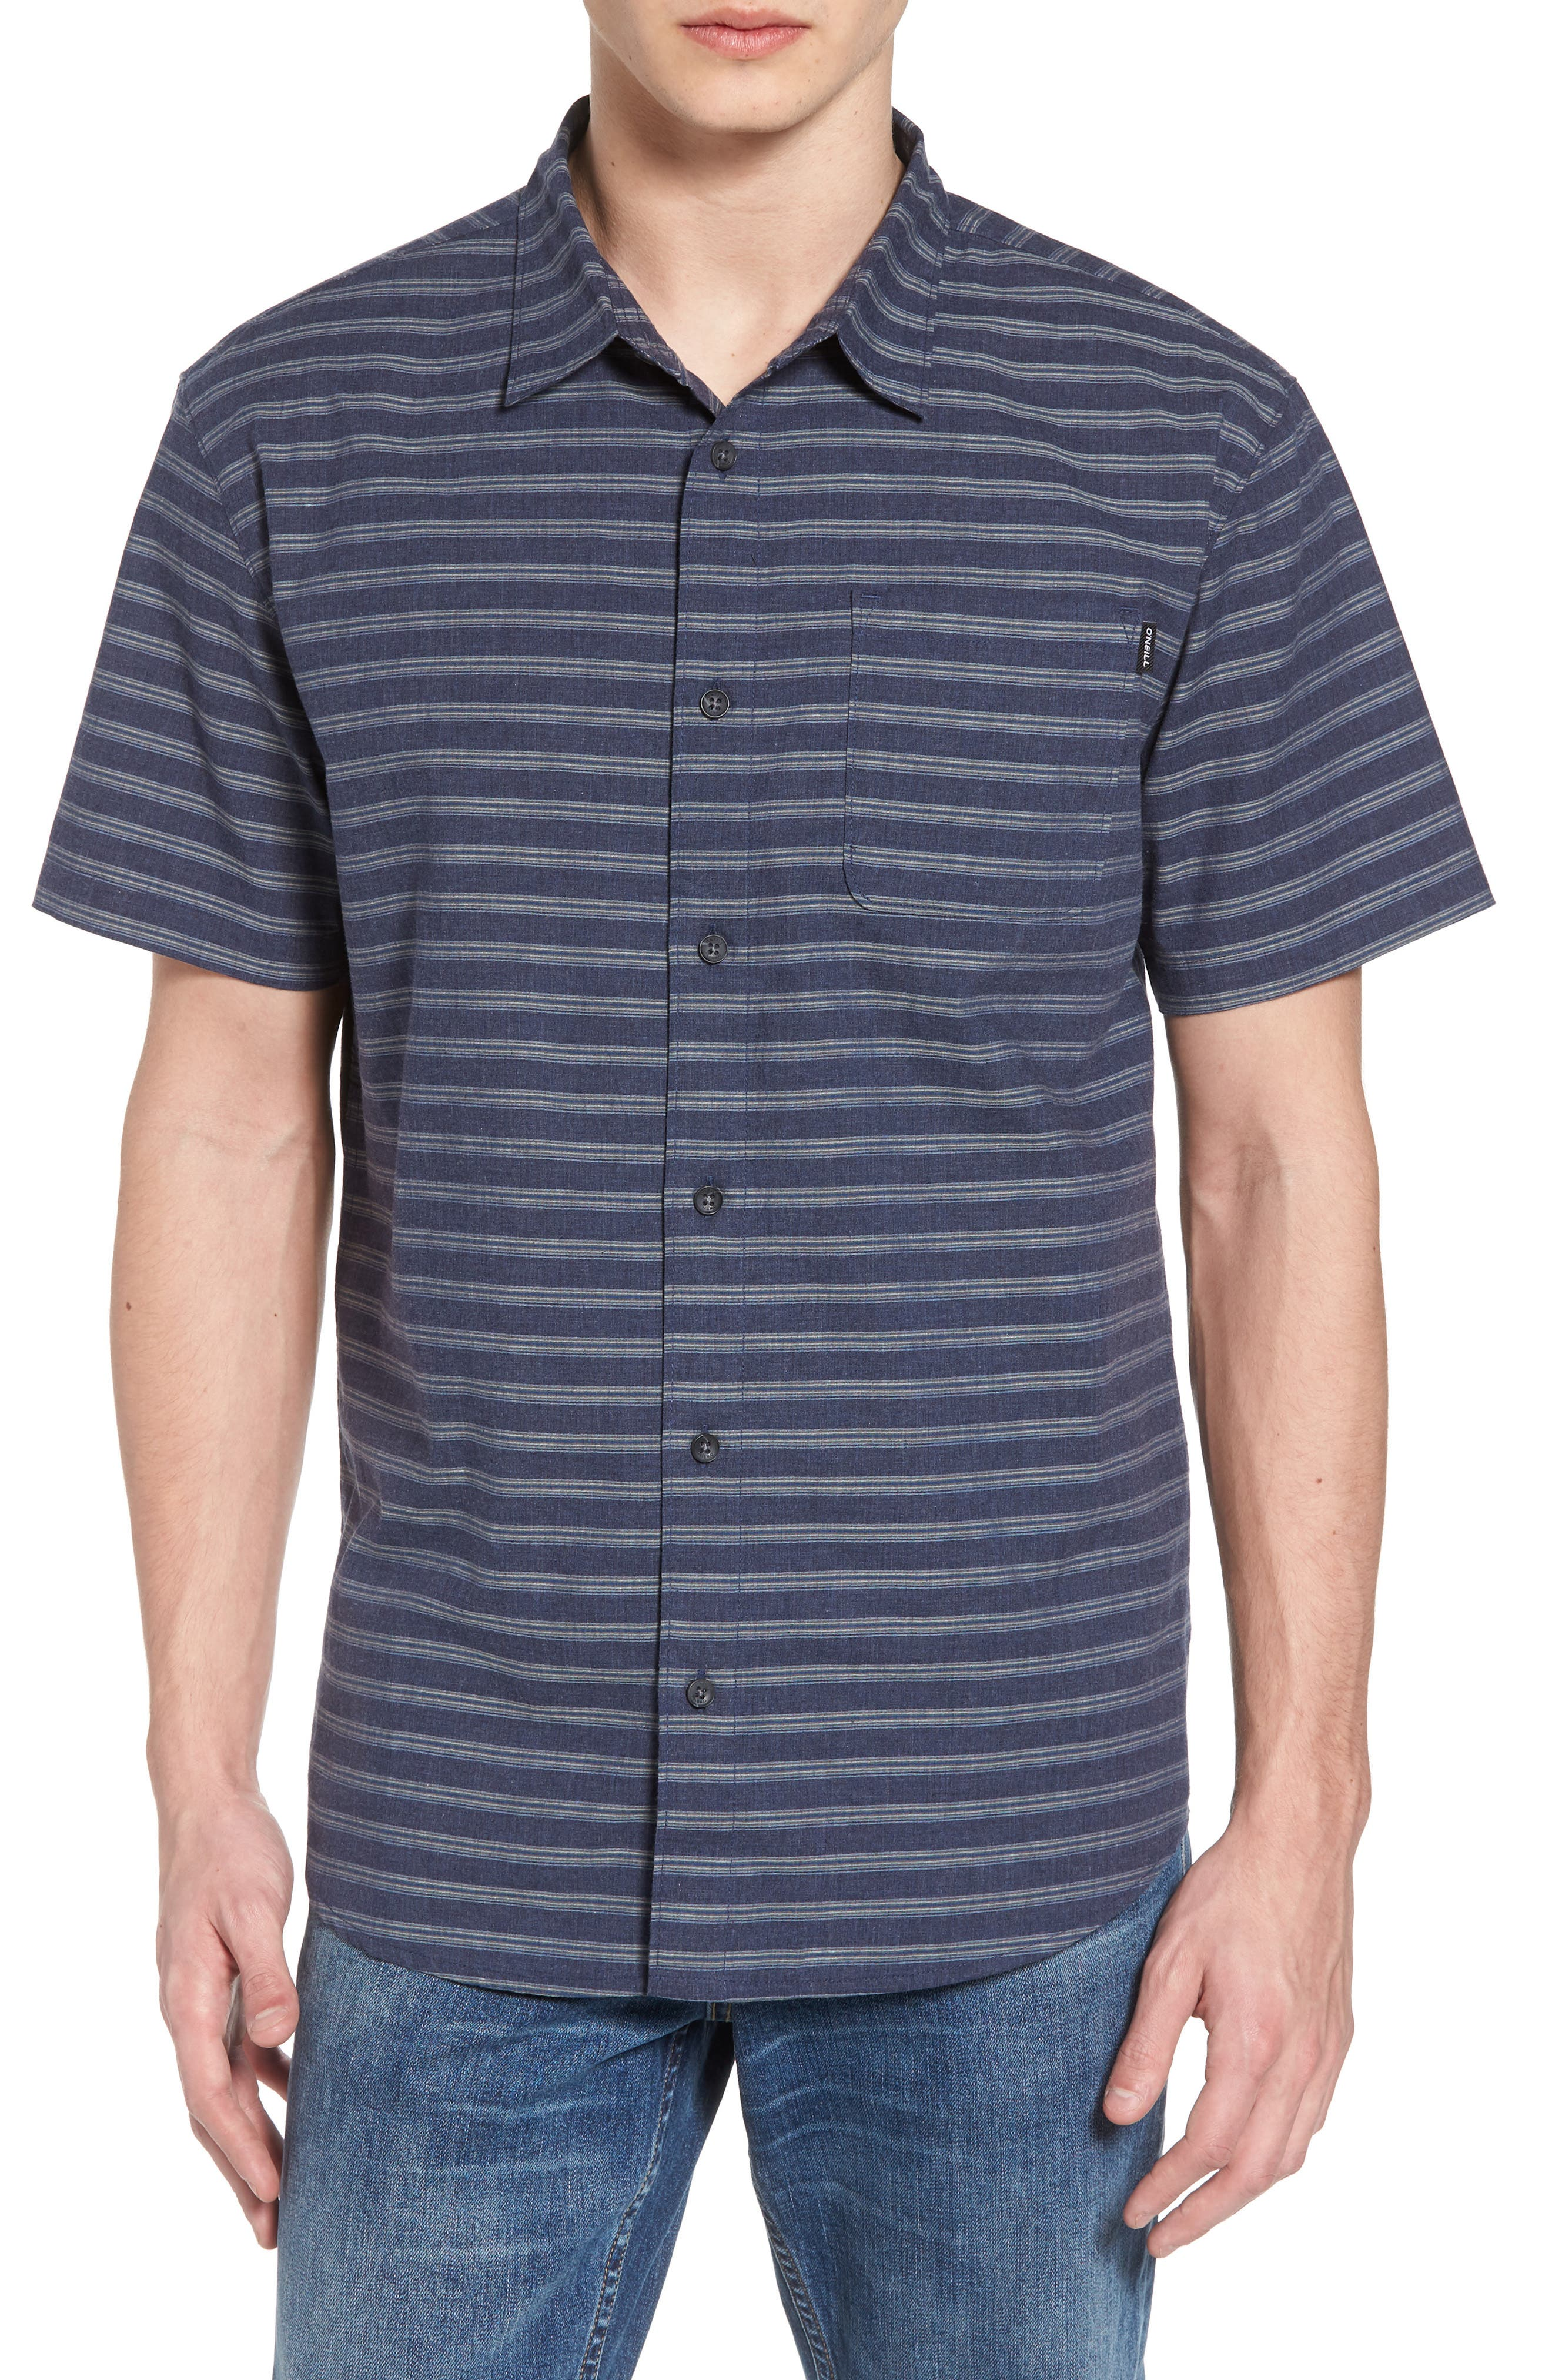 Stag Short Sleeve Shirt,                         Main,                         color, Navy